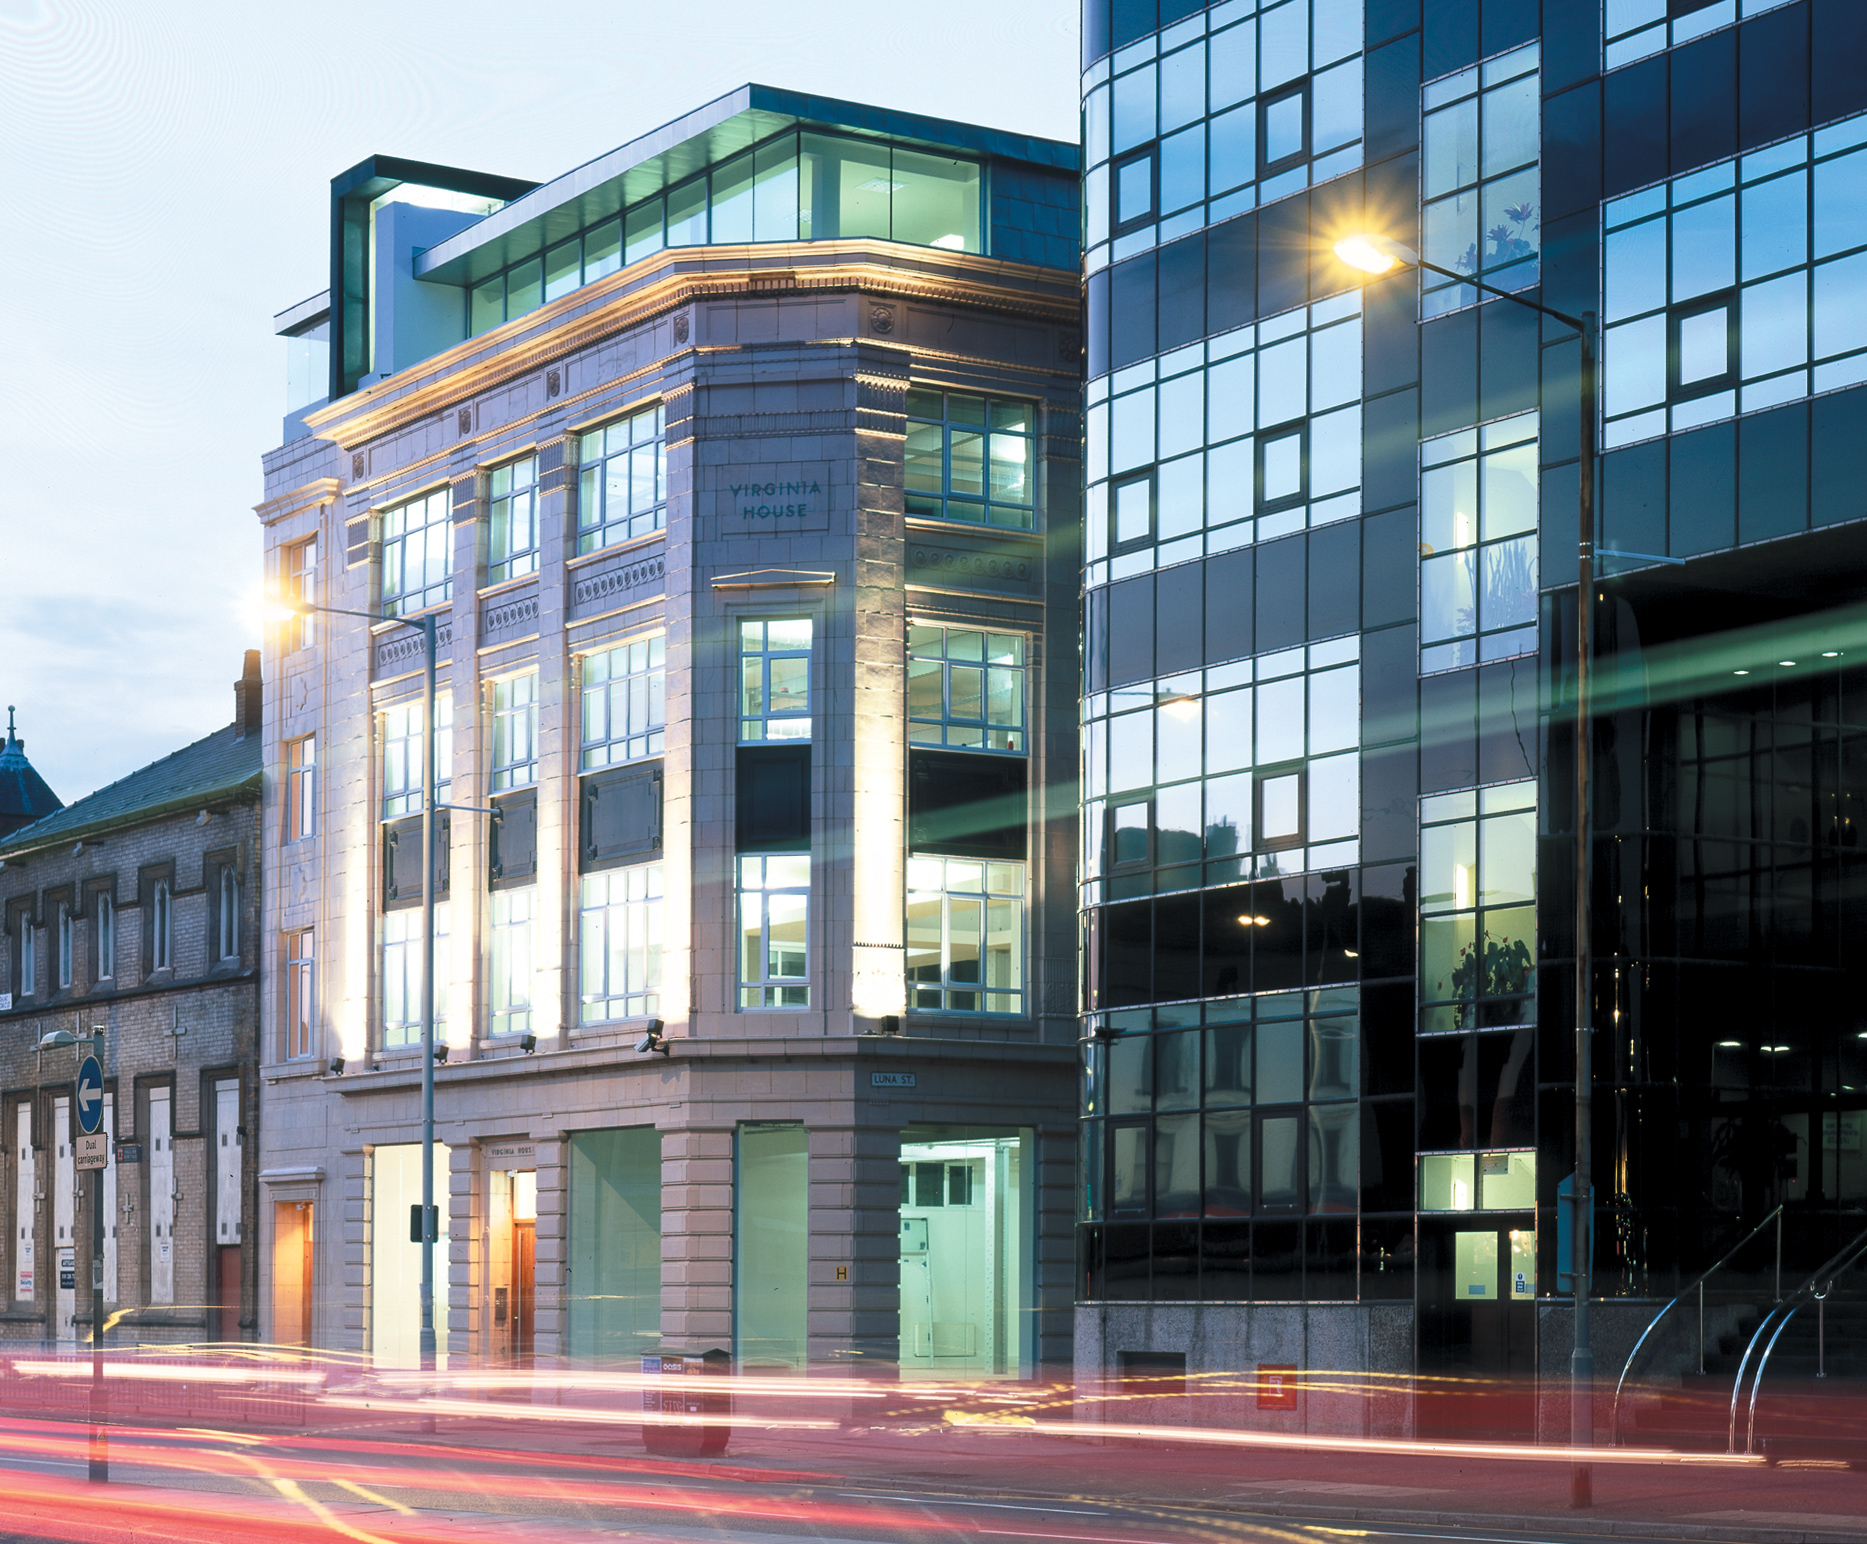 Virginia House, Ancoats, Manchester